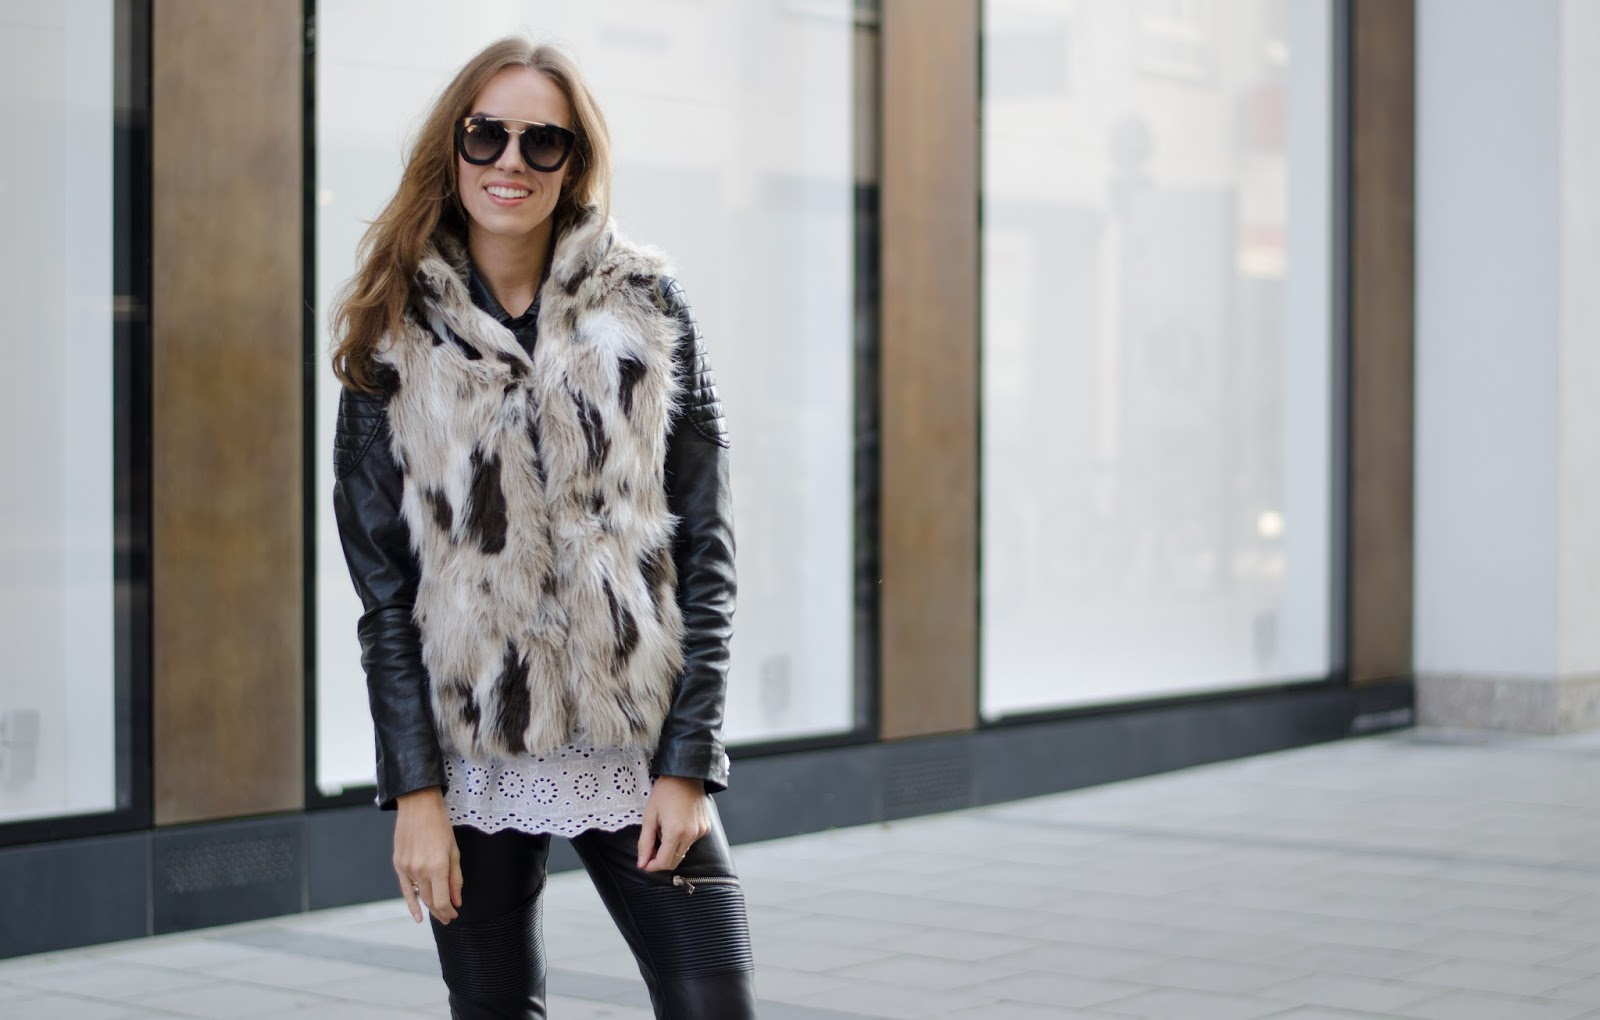 kristjaana mere zara faux fur vest barneys leather jacket prada cinema sunglasses fall outfit